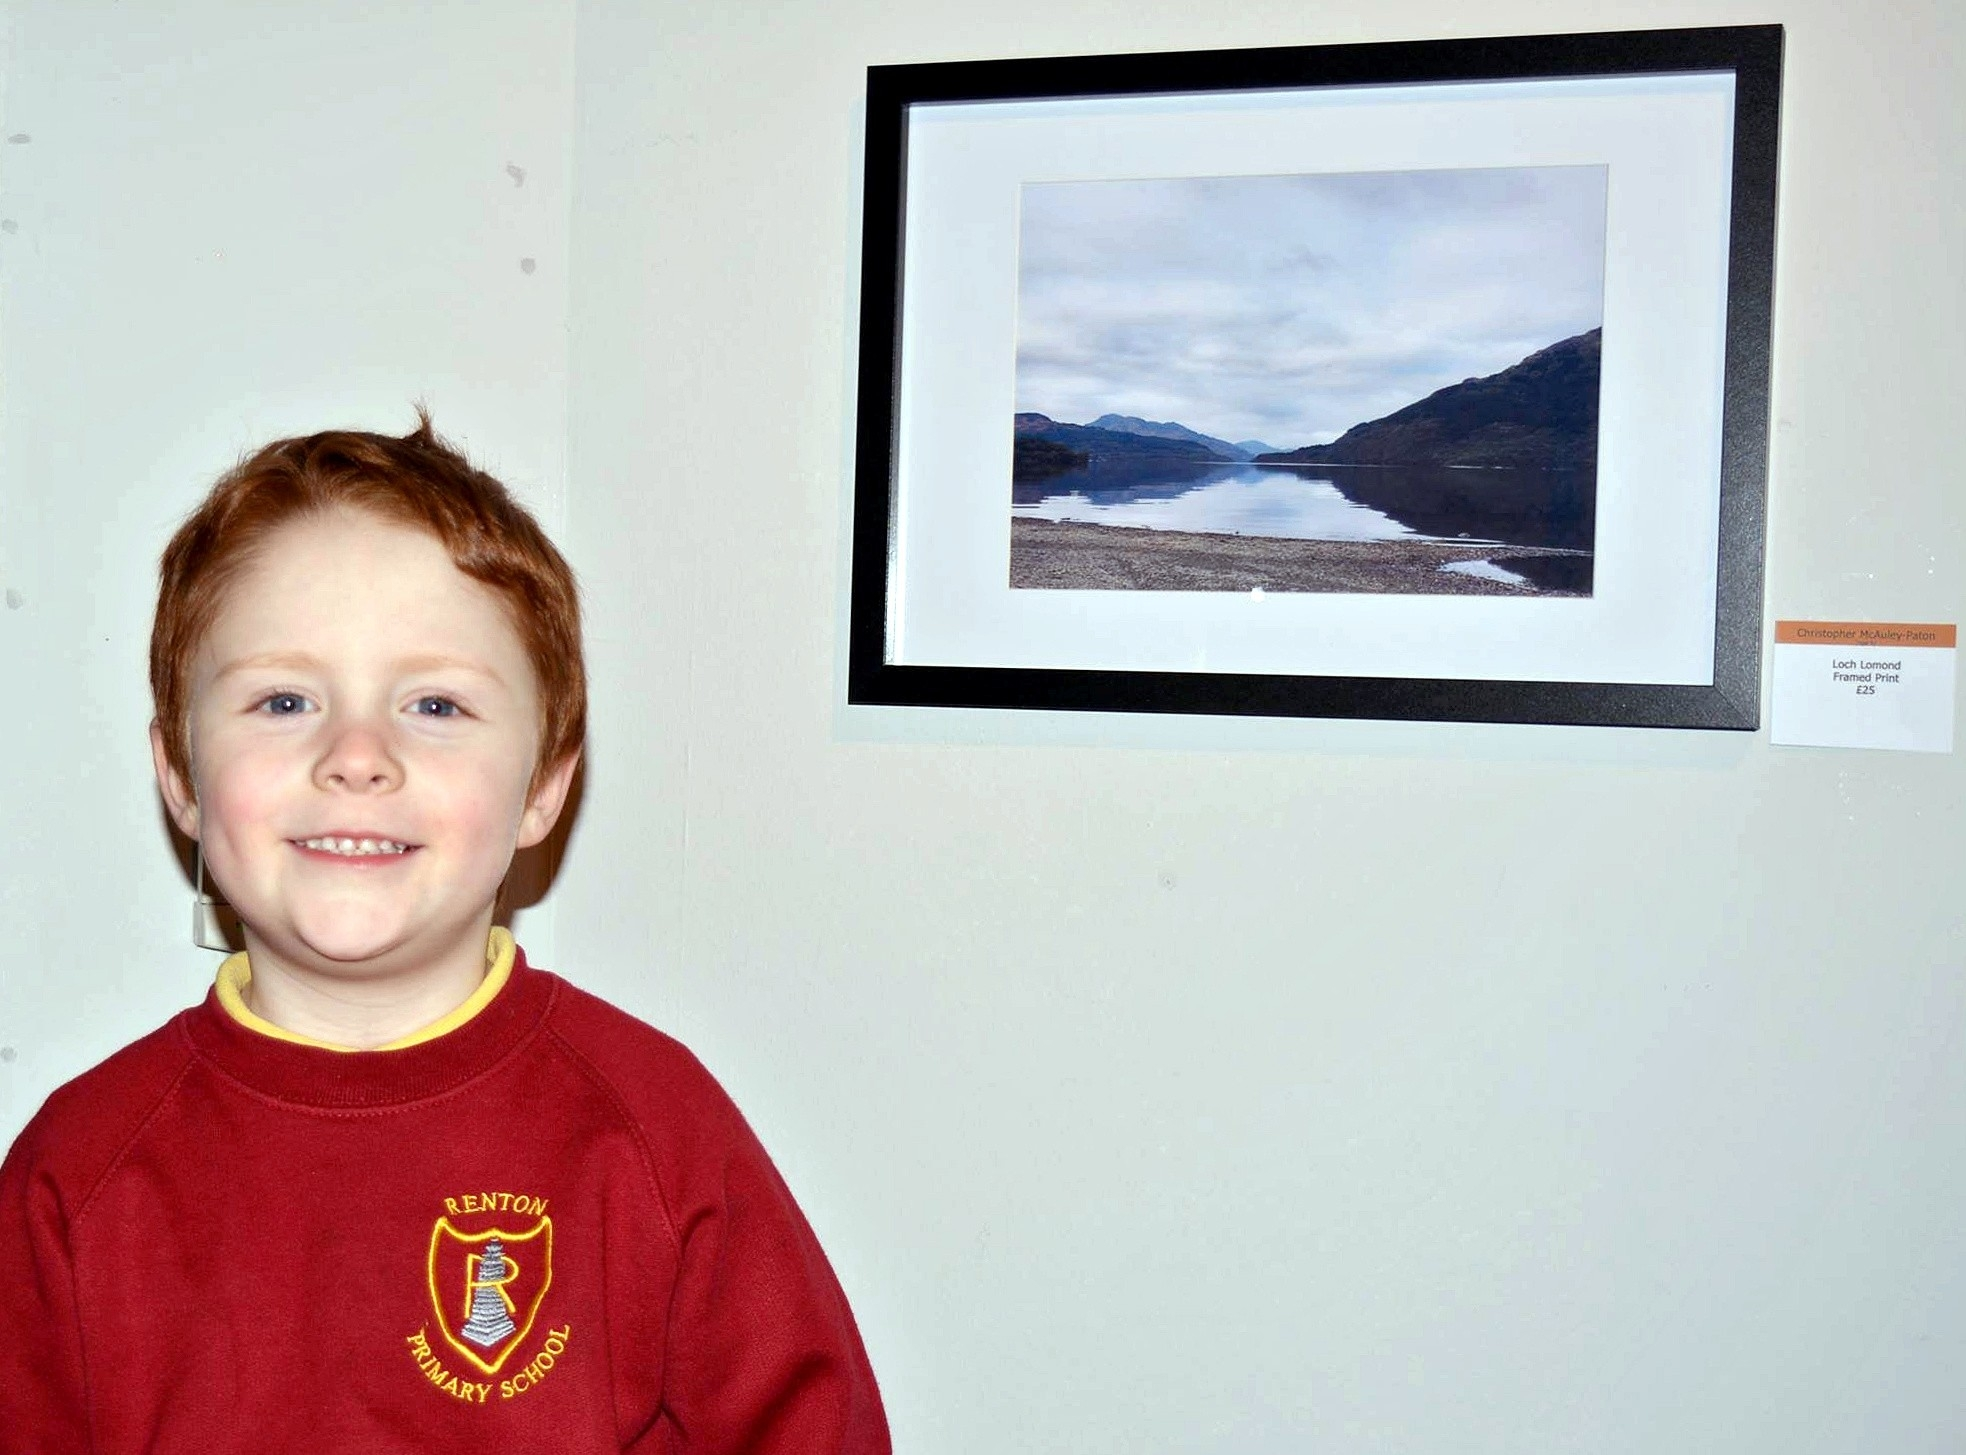 Christopher McAuley-Paton, 4, beside his photo of Loch Lomond he snapped on his mum's iPhone.